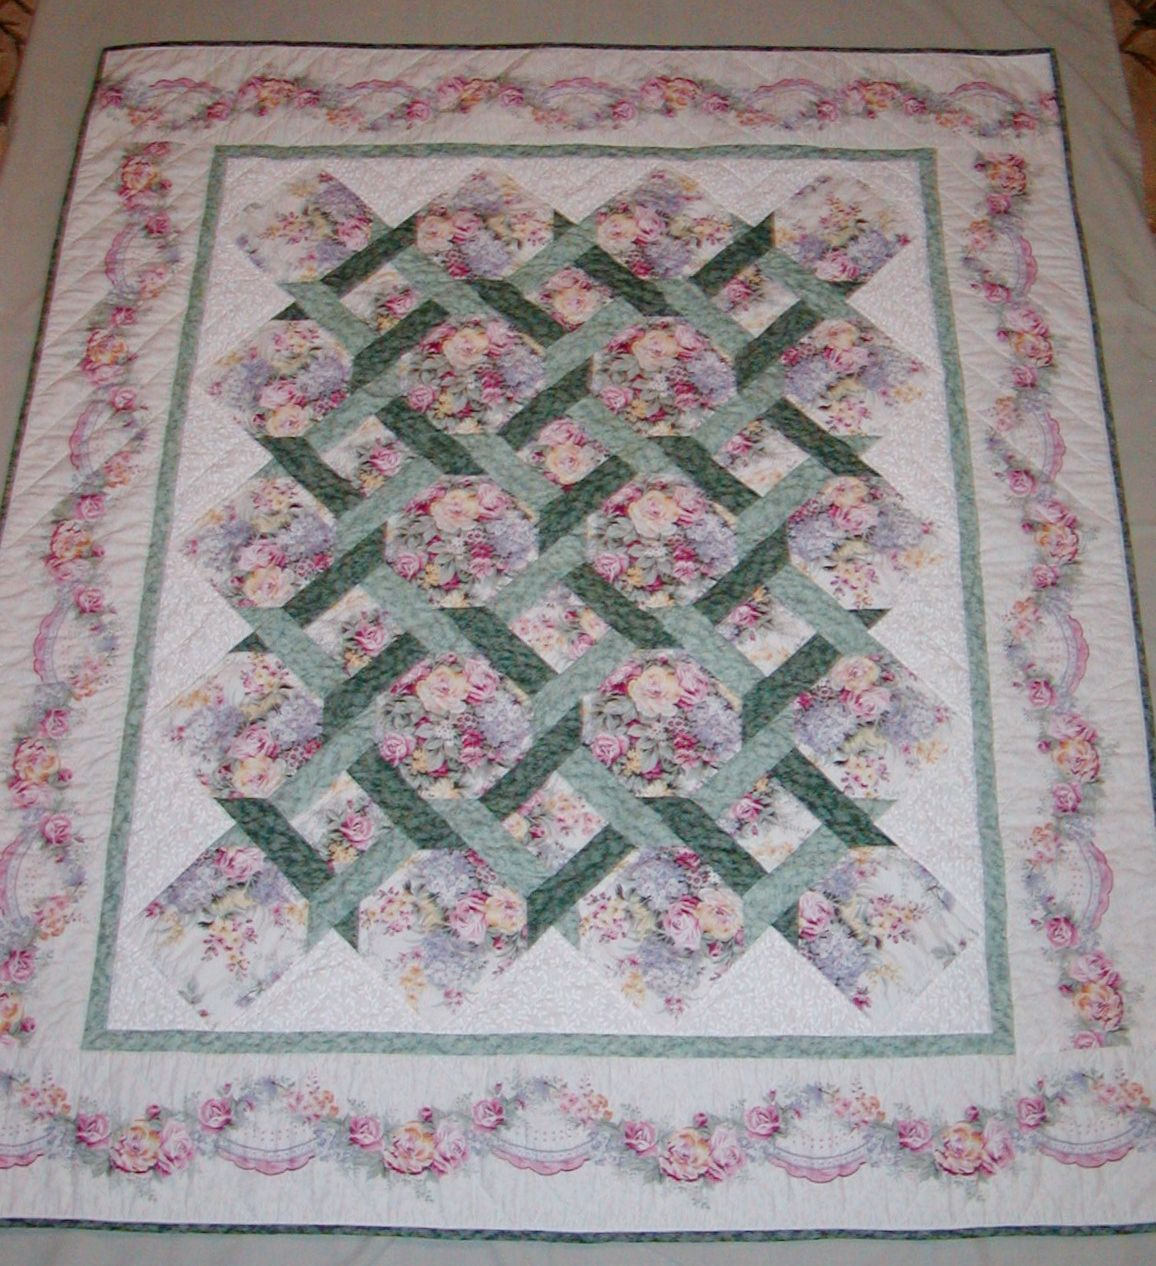 Garden trellis quilt Screwed up the border by not mitering the